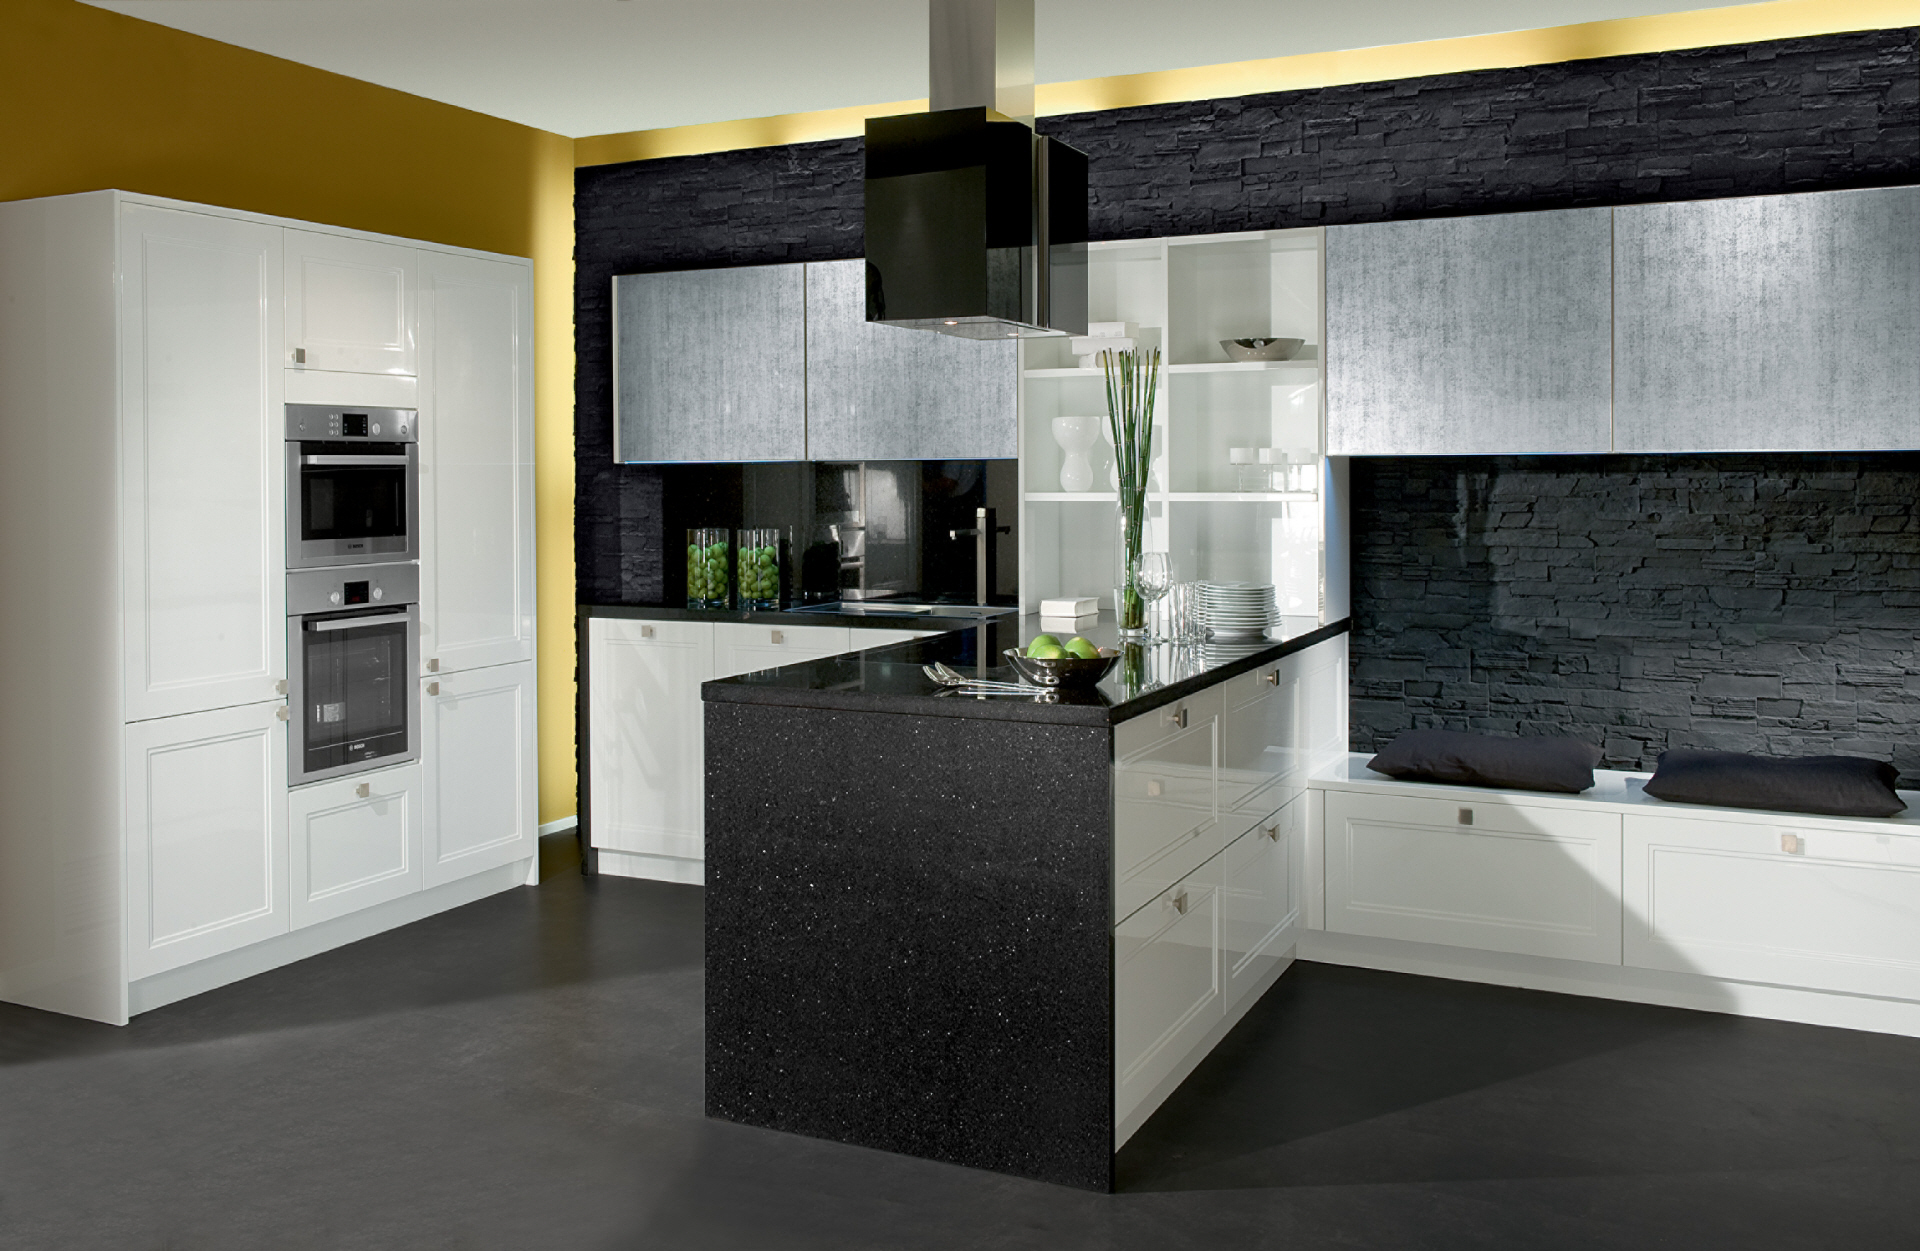 moderne k chen schwarze w nde holzschr nke pictures to pin on pinterest. Black Bedroom Furniture Sets. Home Design Ideas